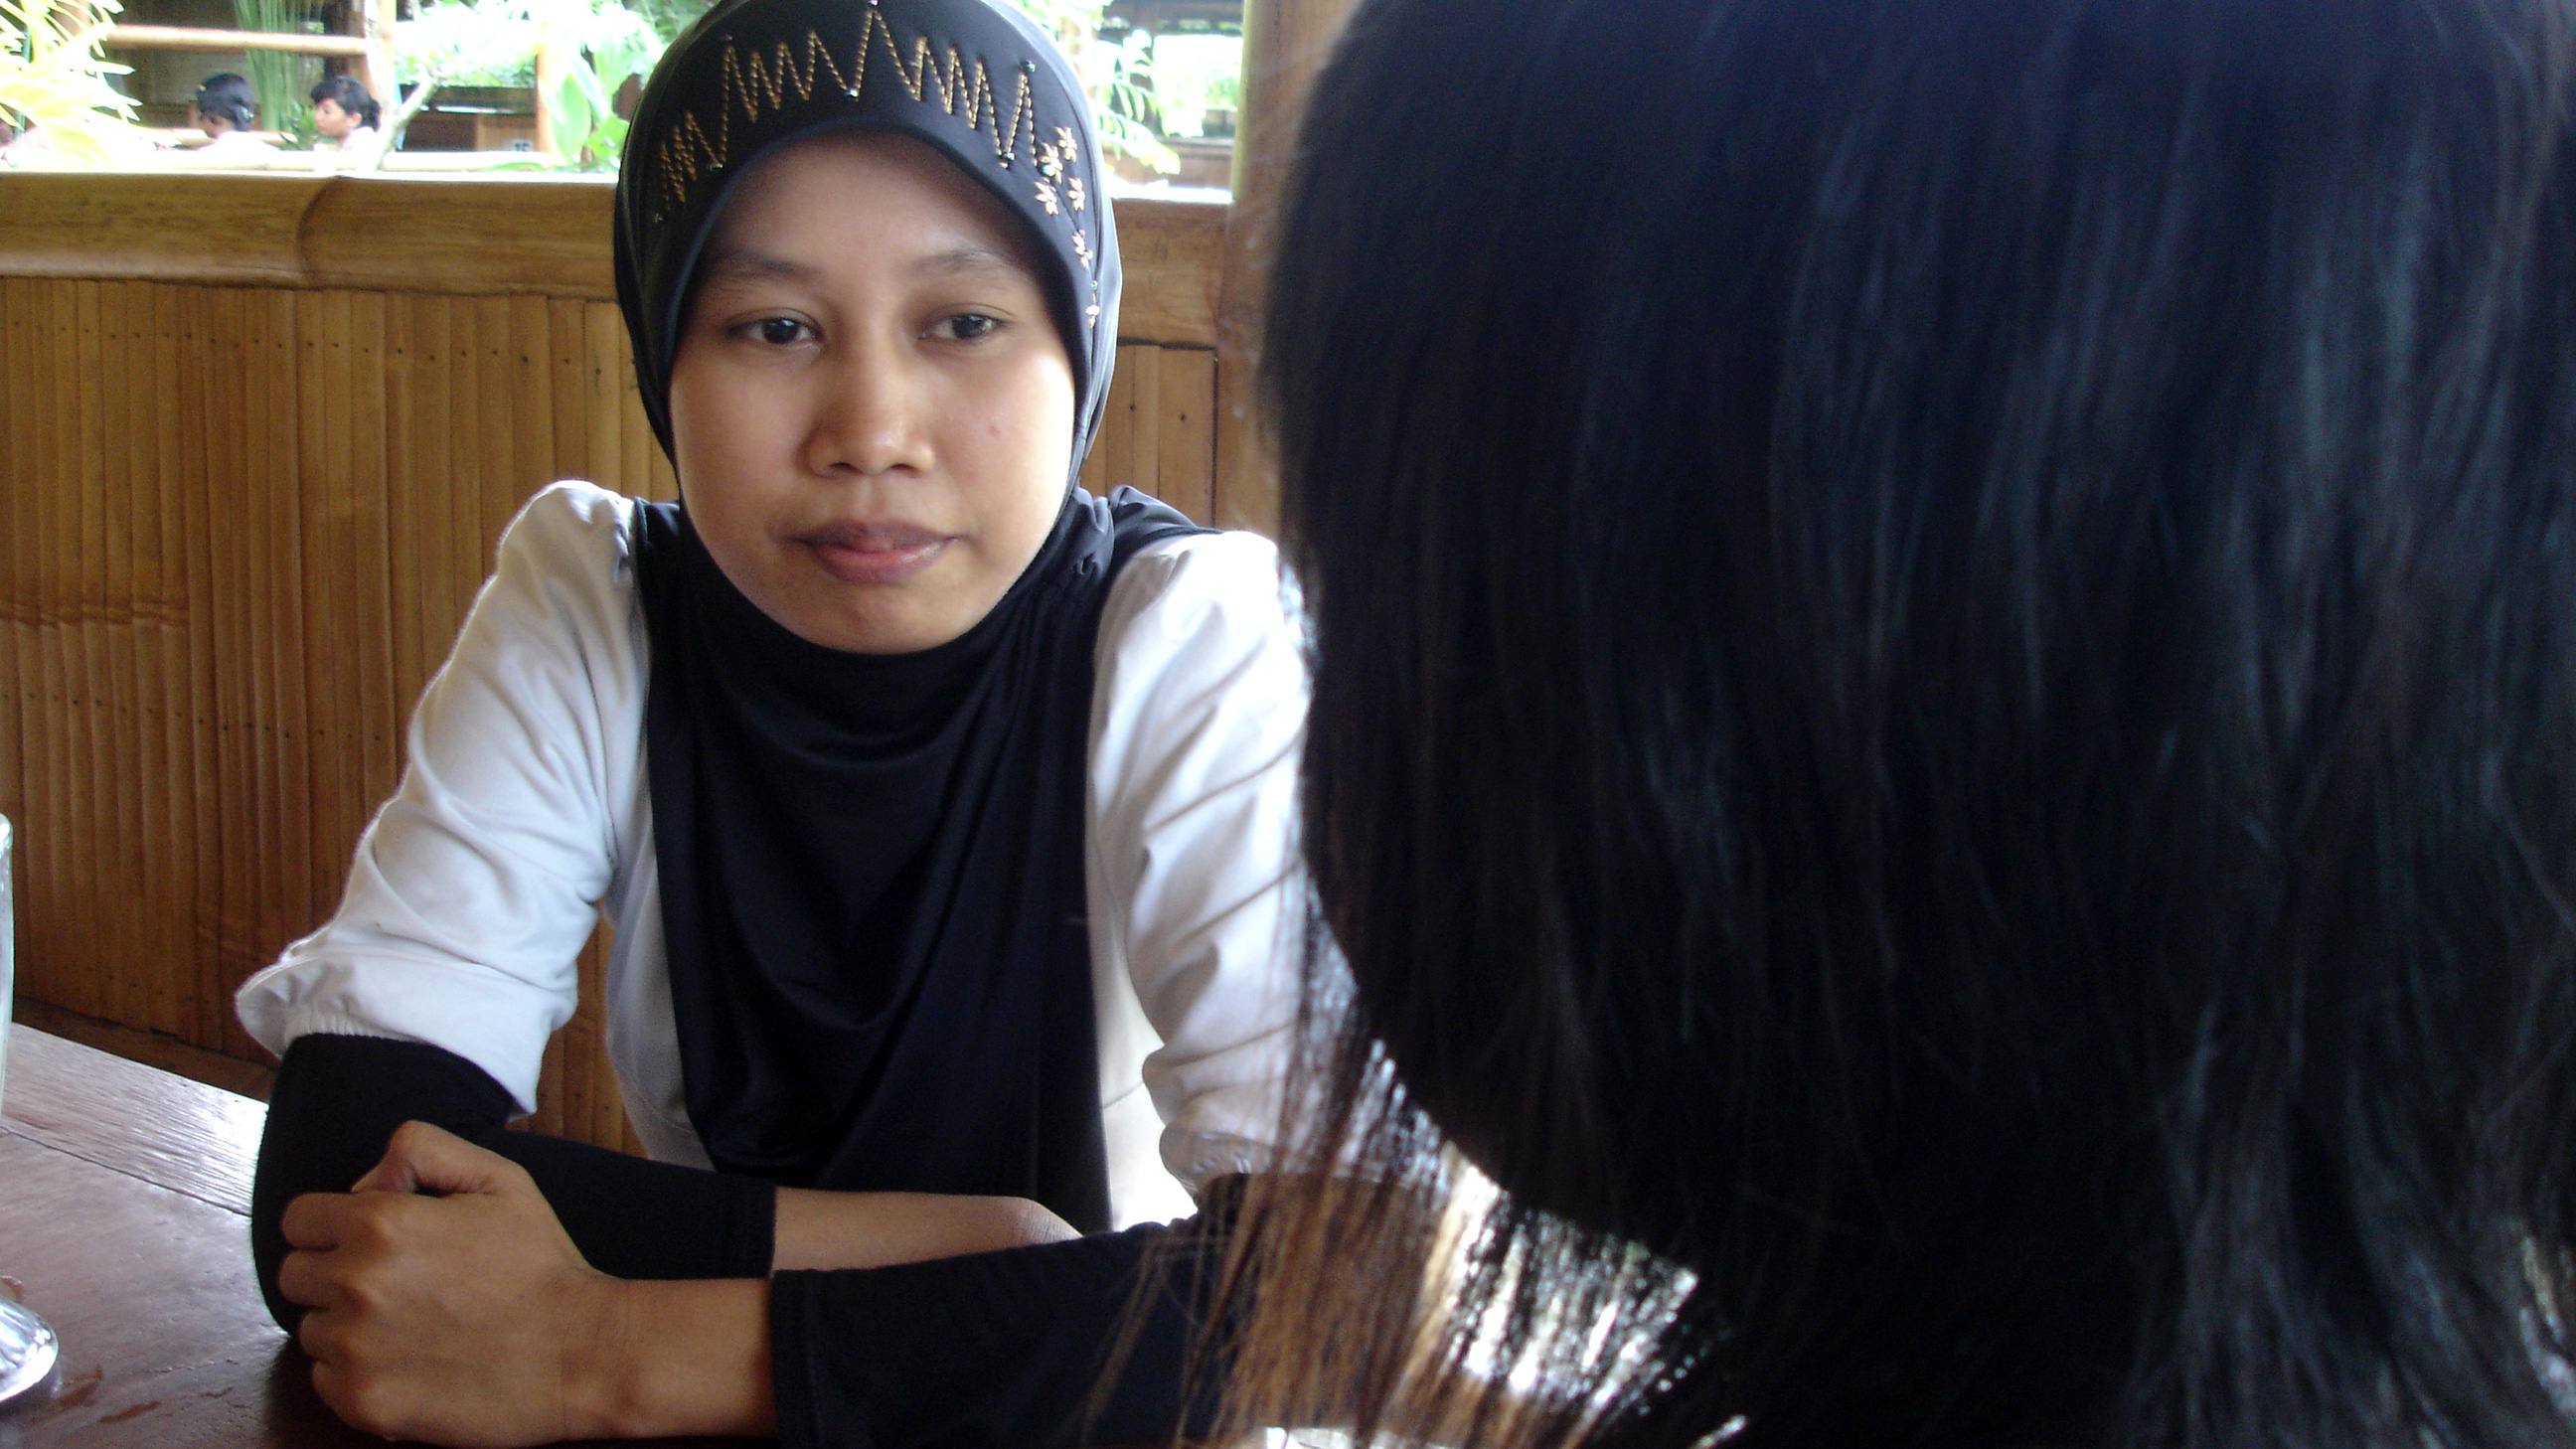 A Genta staff member counsels 19-year-old Isah. Some statistics suggest that 80,000 to 100,000 women and children are victims of sexual exploitation or have been trafficked for such purposes each year